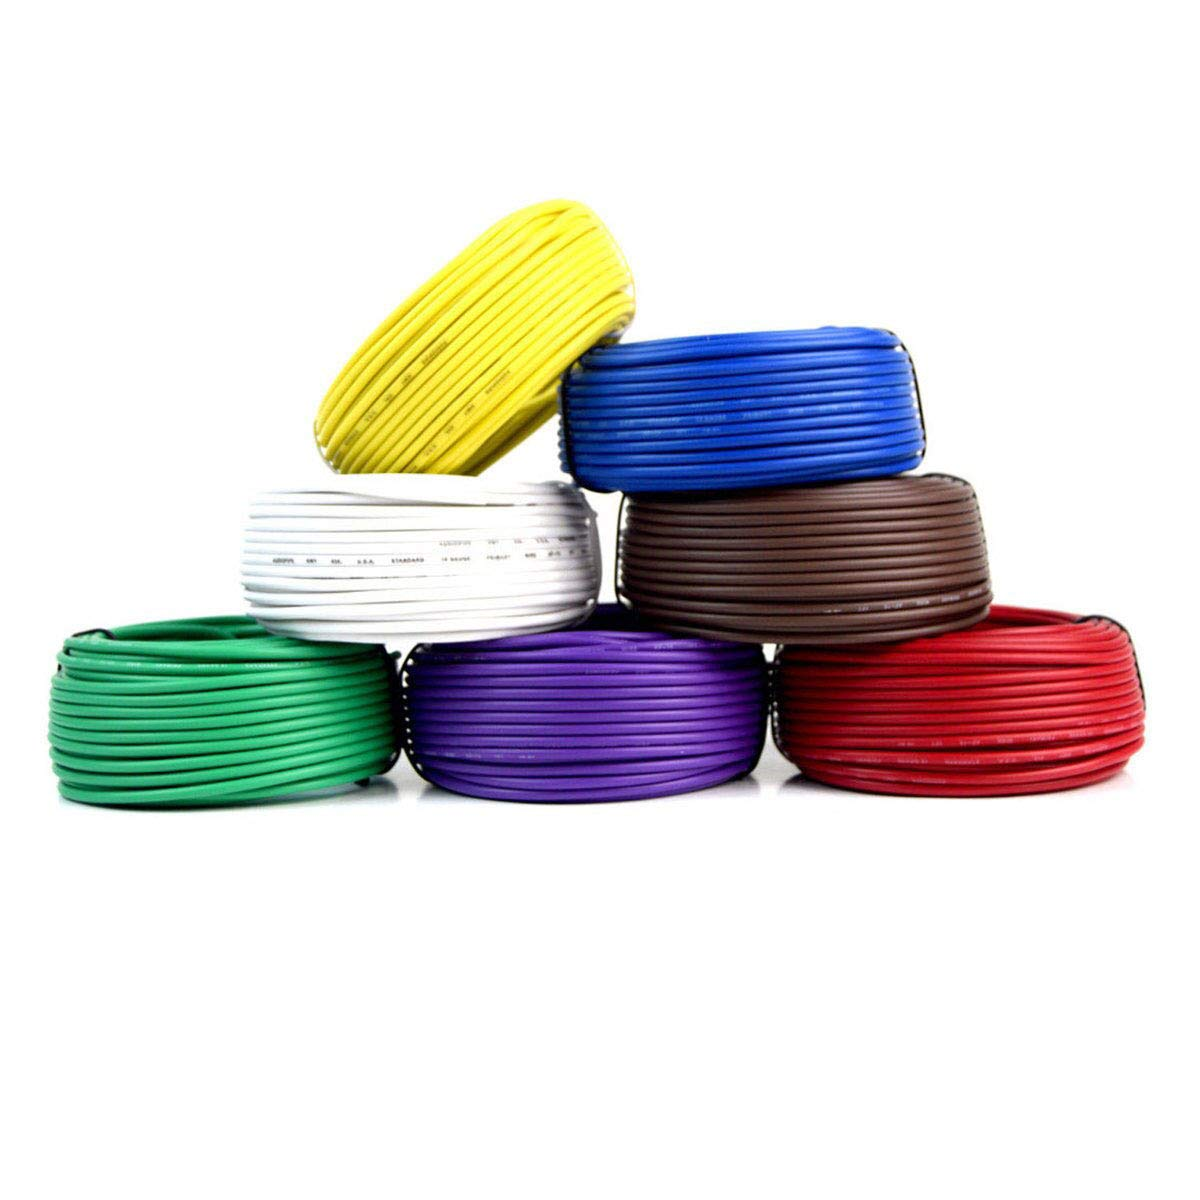 [ANLQ_8698]  Amazon.com: Best Connections Trailer Light Cable Wiring Harness 50 Feet 14  Gauge 7 Wire 7 Colors: Automotive | 7 Wire Trailer Wiring Harness |  | Amazon.com